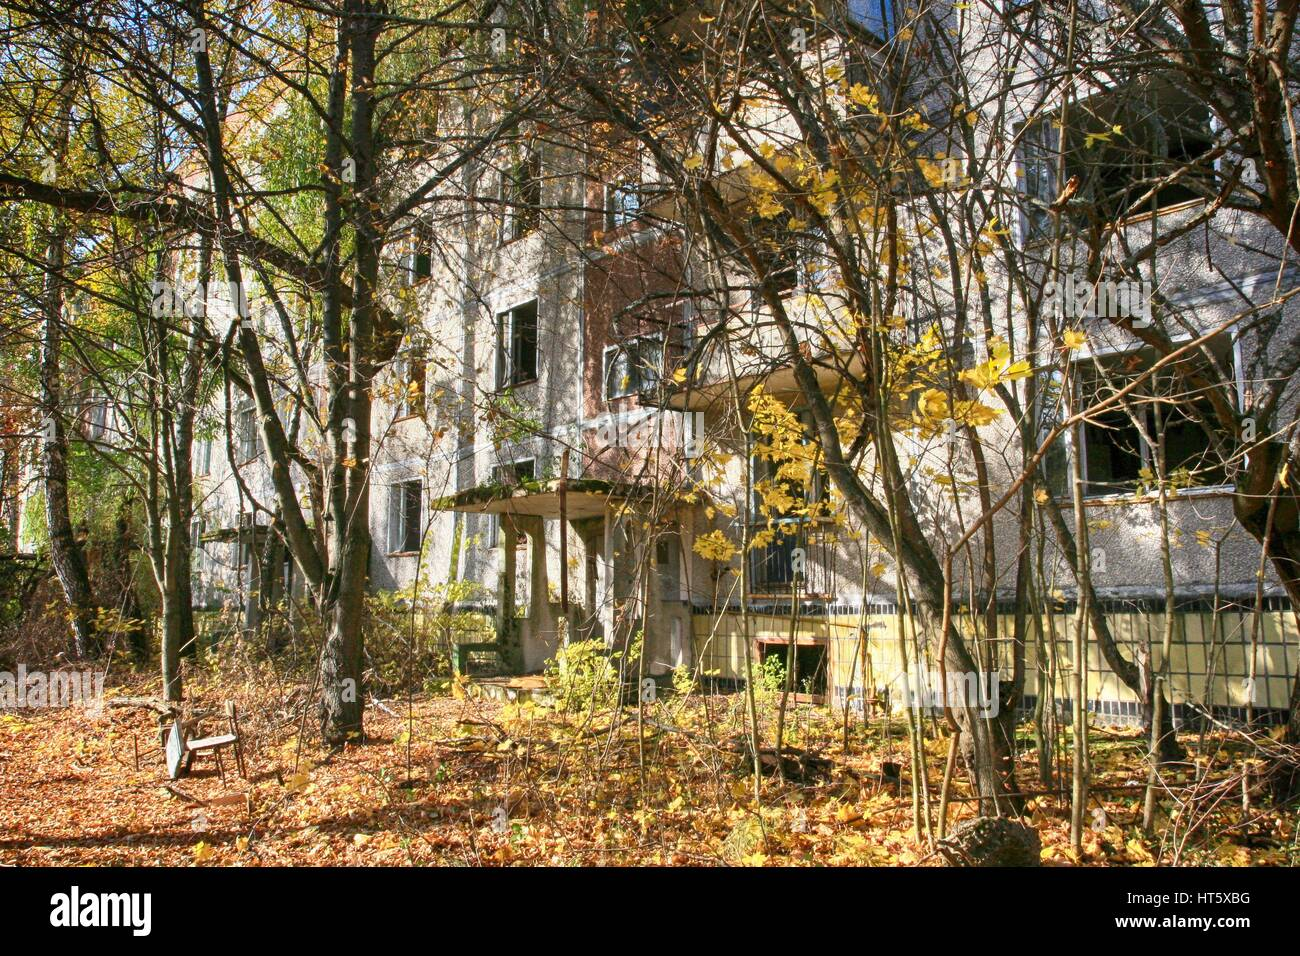 Chernobyl, Pripyat – abandoned building taken over by vegetation after Chernobyl disaster - Stock Image